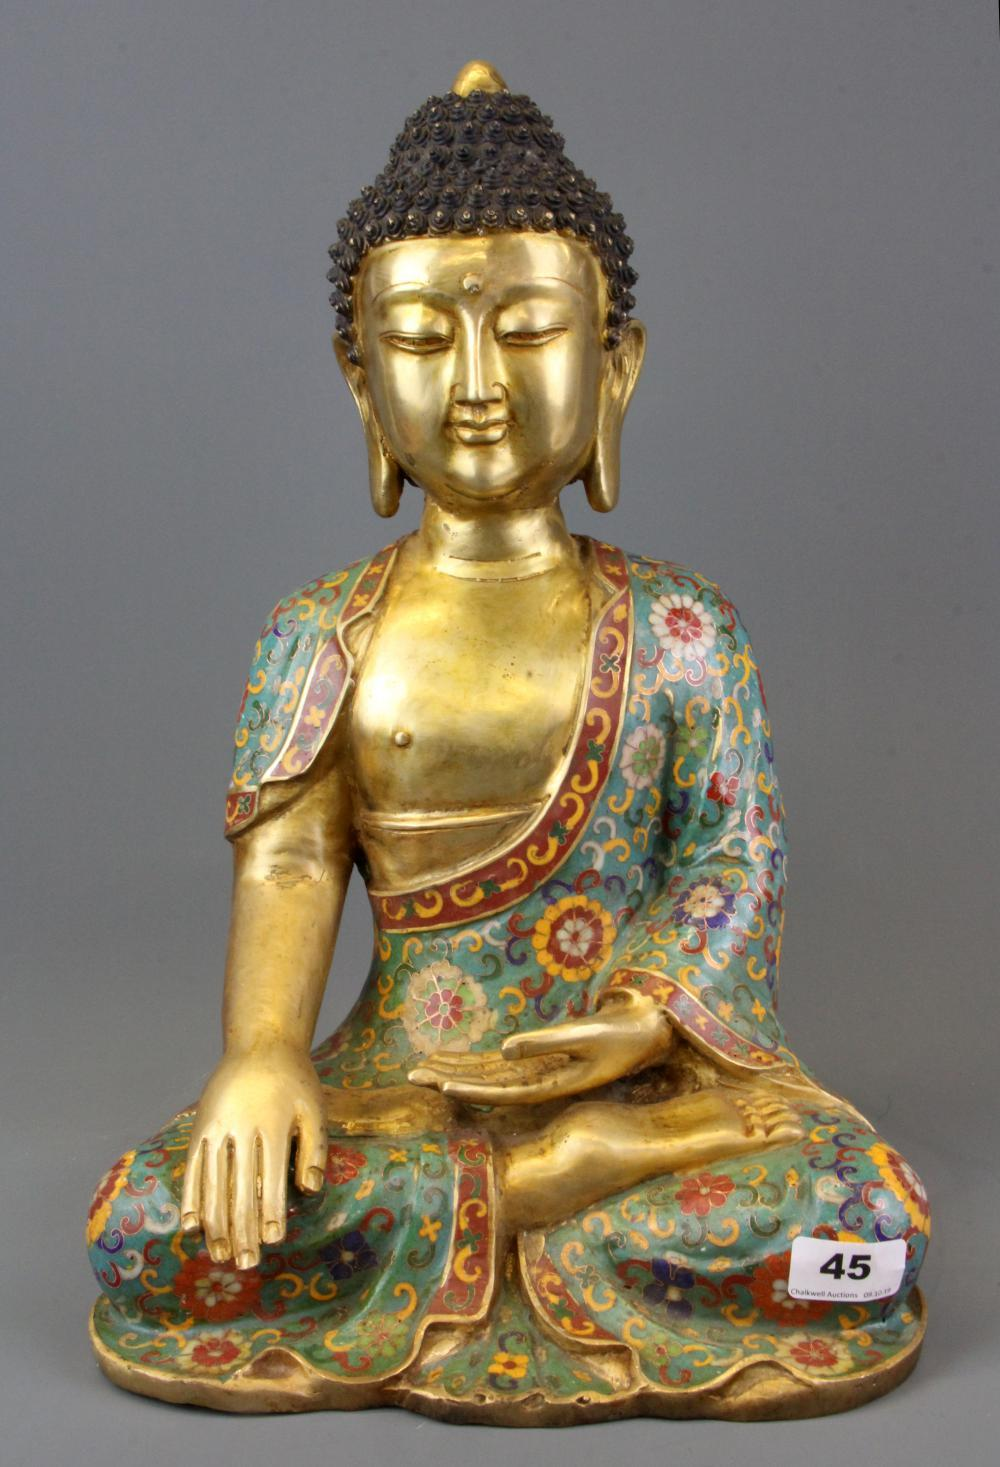 A Chinese cloisonne decorated gilt bronze figure of the seated Buddha, H. 45cm.